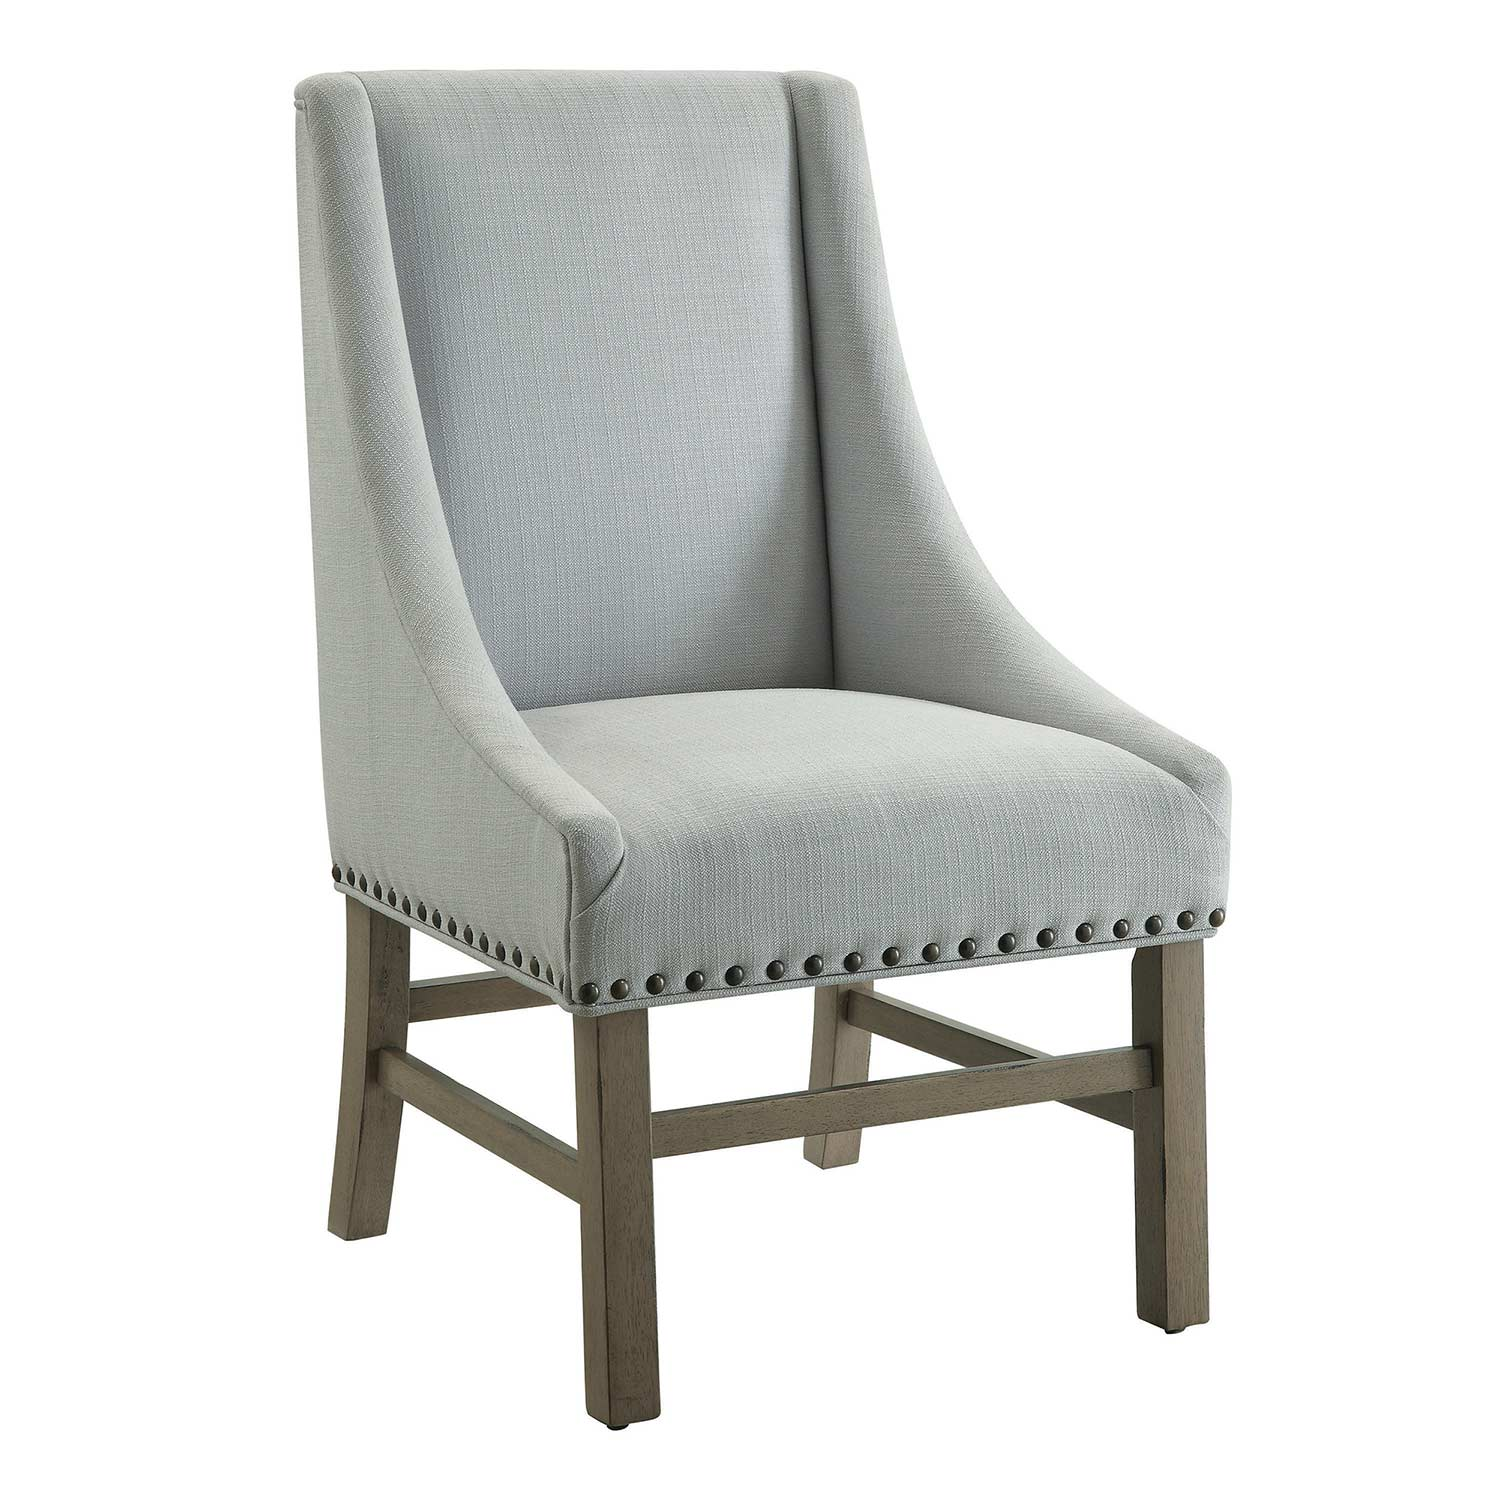 Coaster 180252 Side Chair - Light Grey